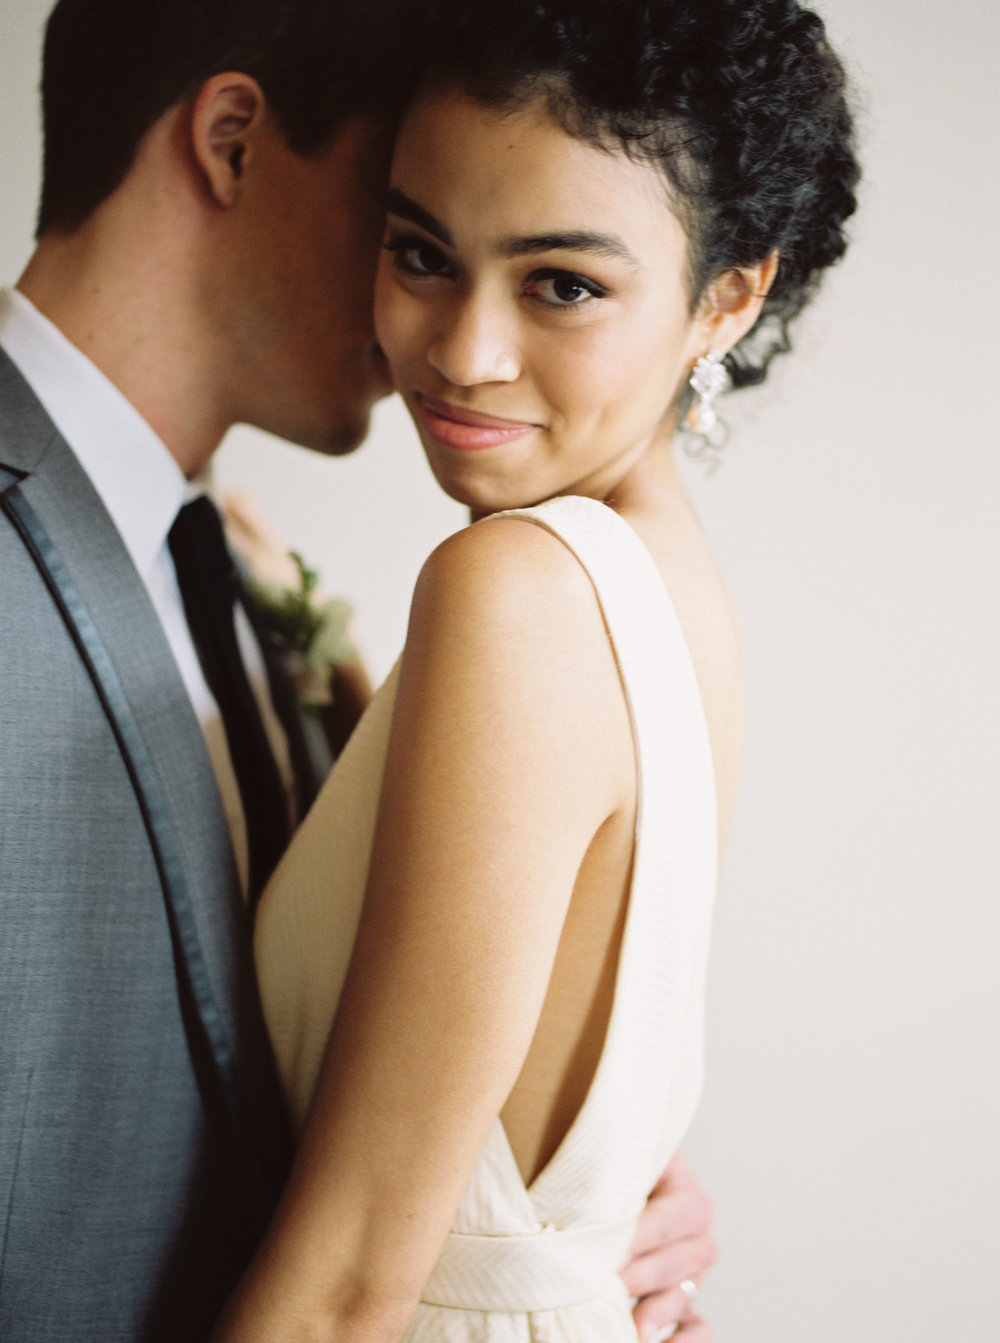 WinterWedding_WavesInspired_JakeAndersonPhoto_KellyLenard_MintLovely-117.jpg